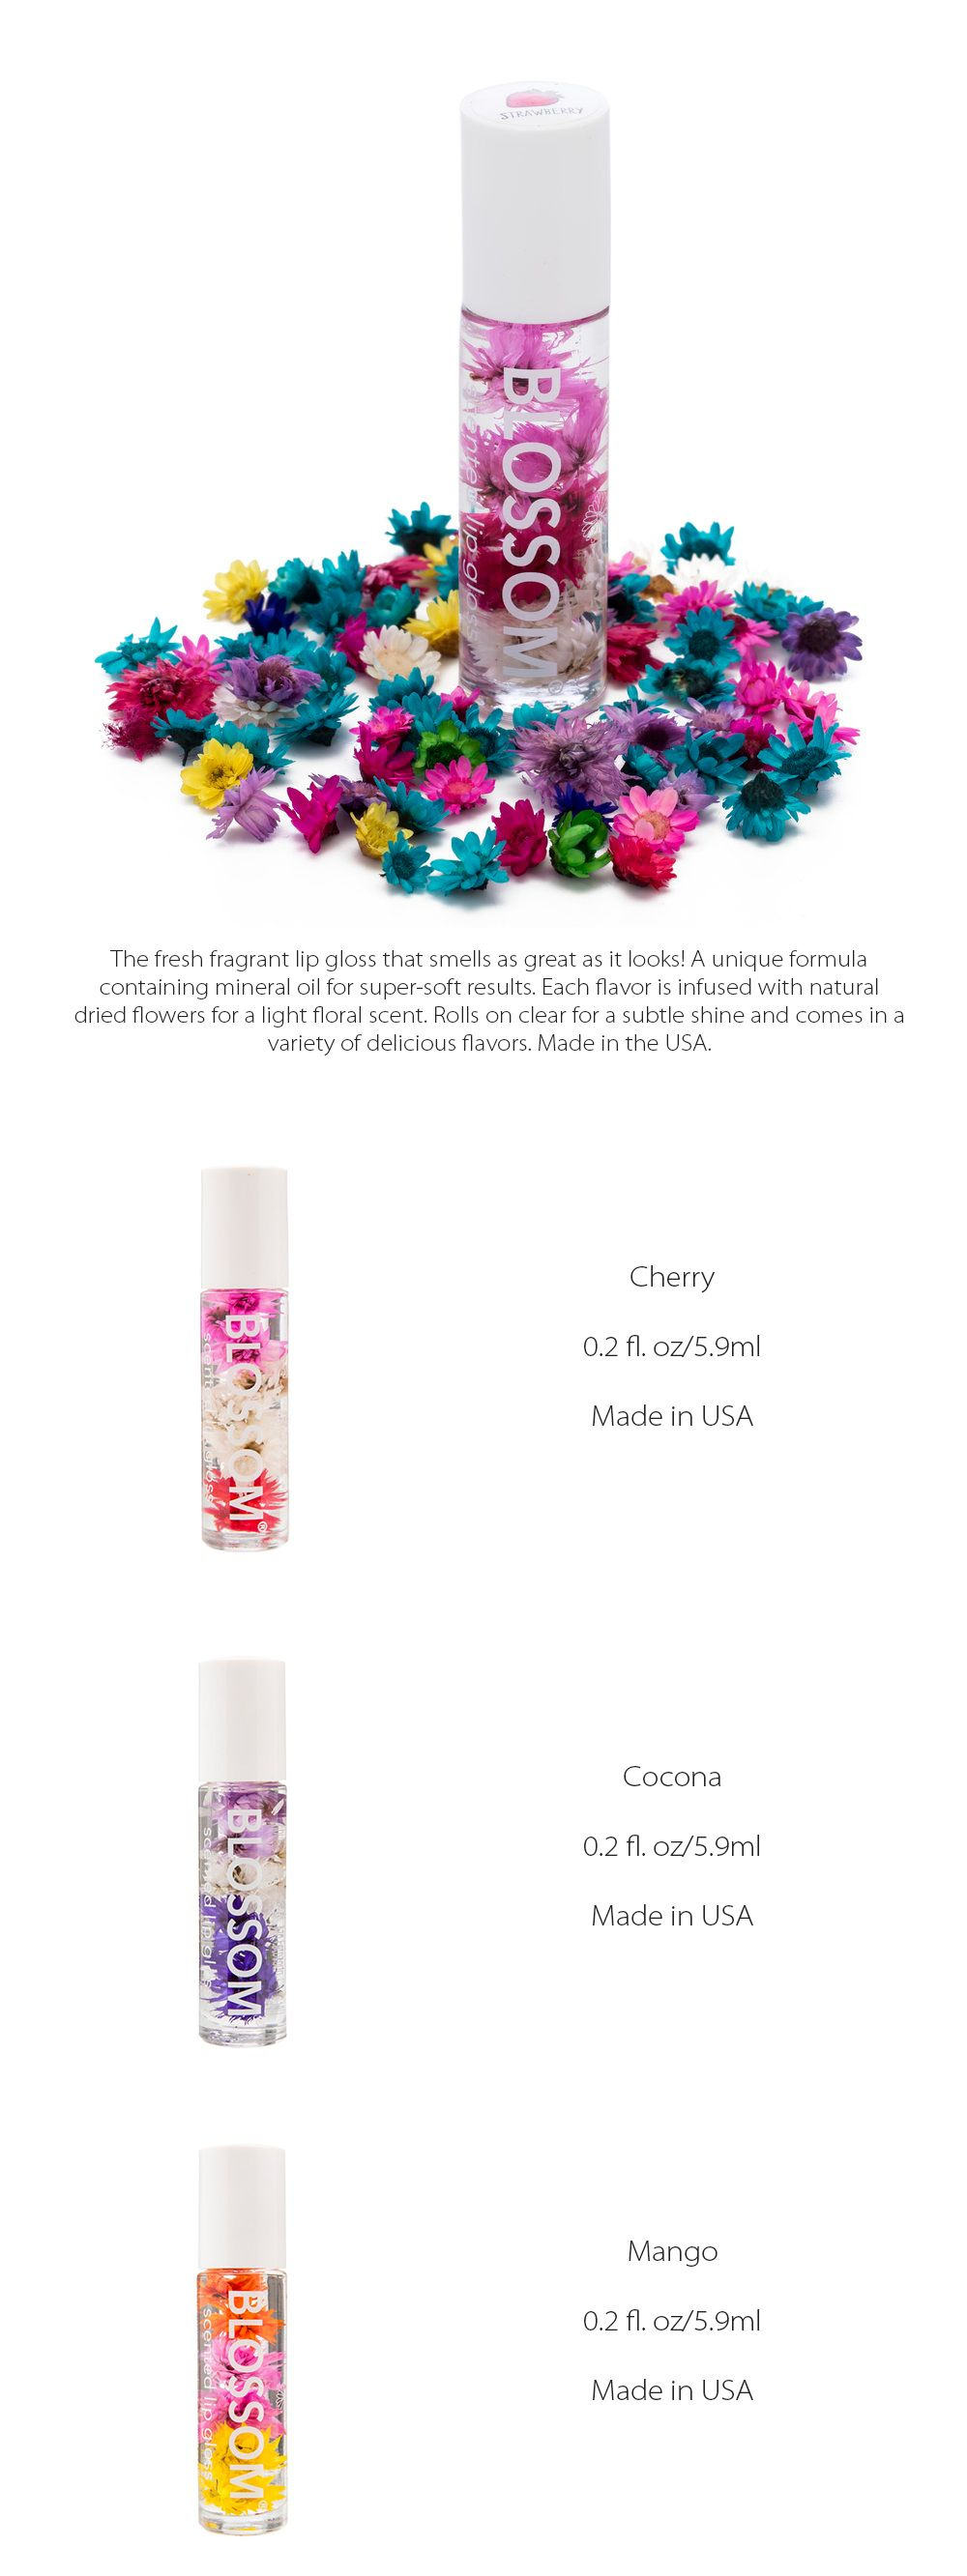 Blossom Scented and Flavored Moisturizing Roll-on Lip Gloss Fresh Fragrant Lip Gloss